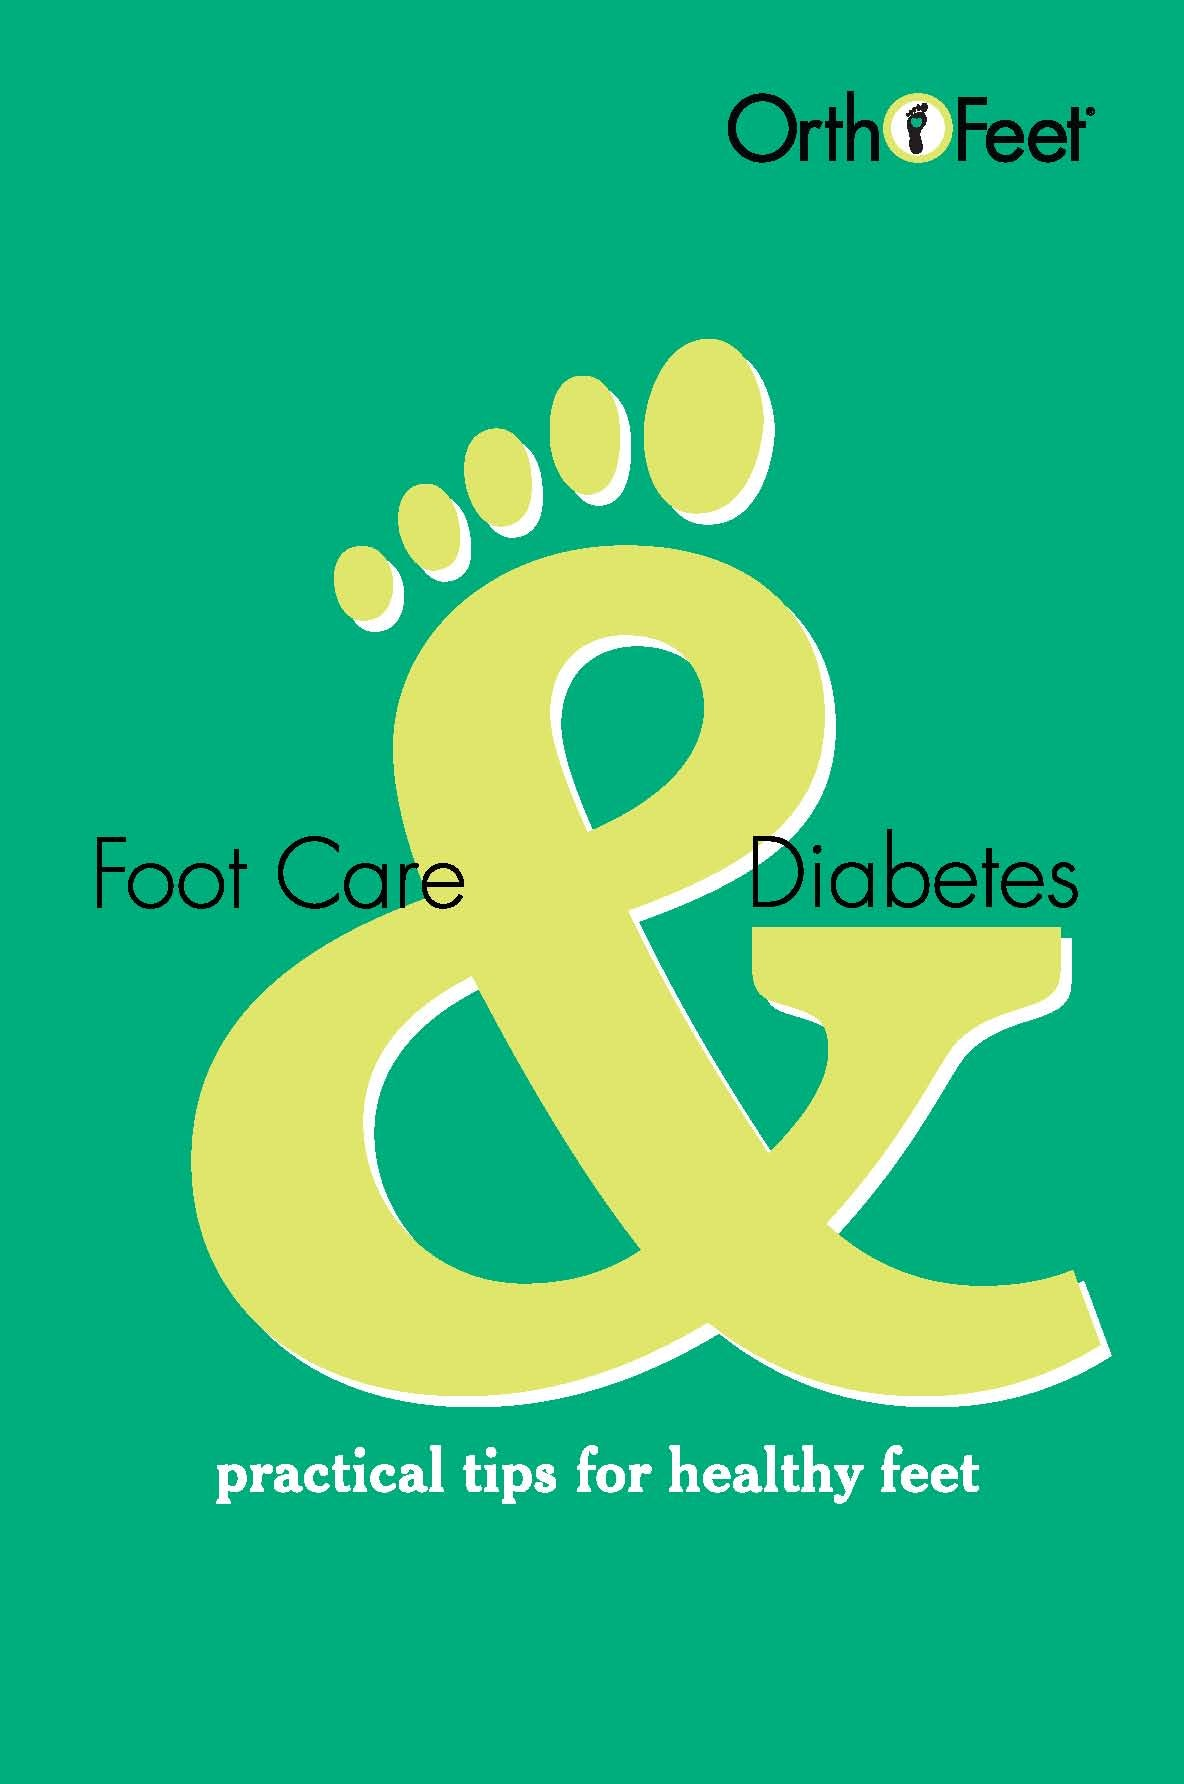 OrthoFeet Foot Care